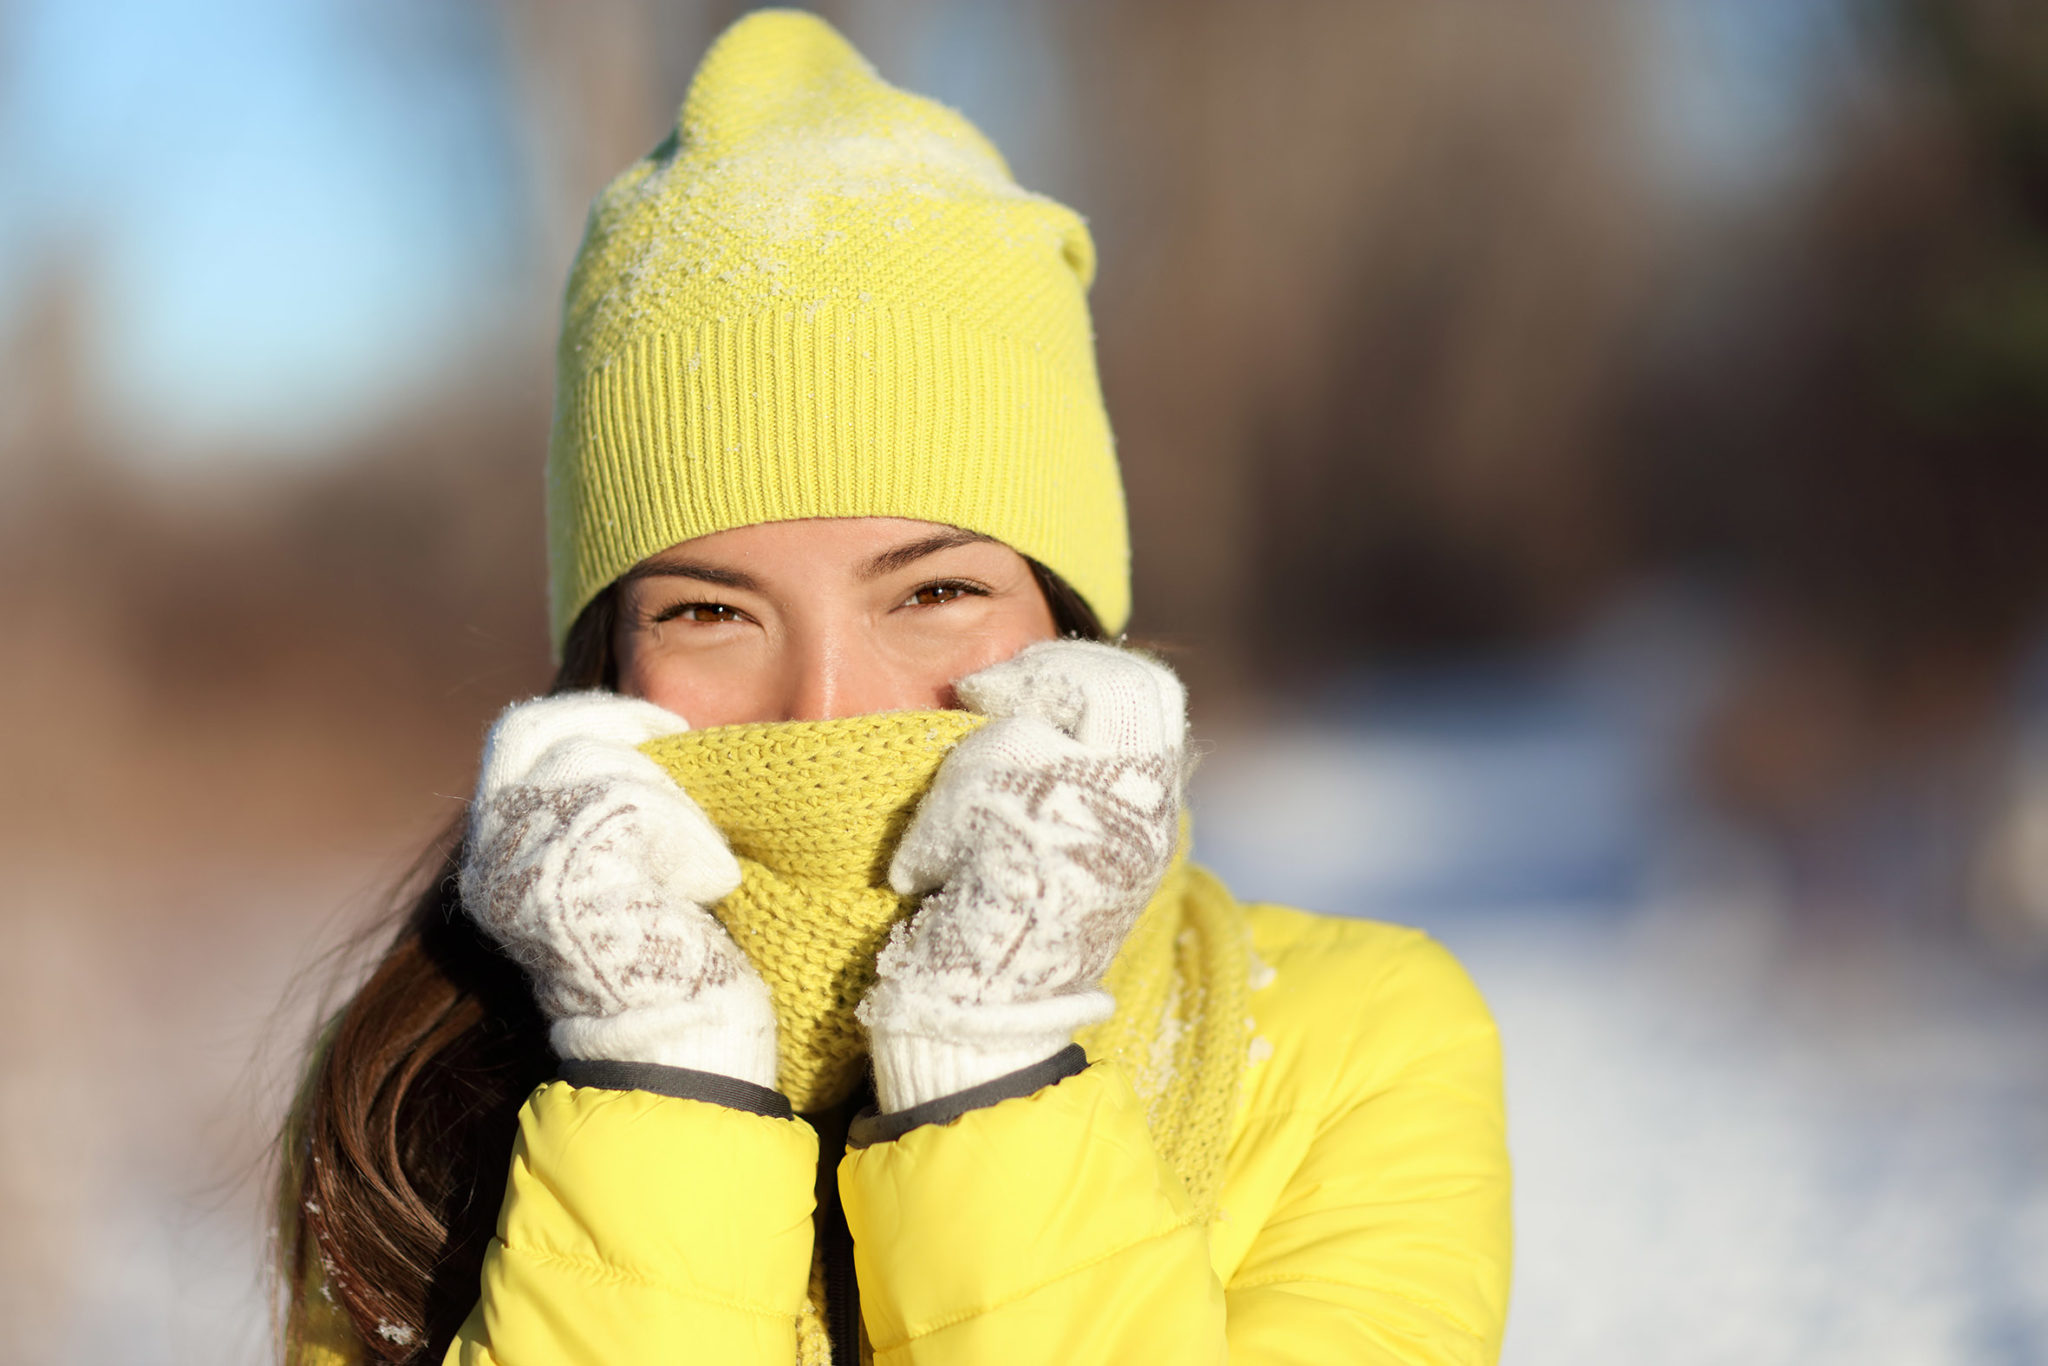 Controlling Asthma Attacks in Cold Weather